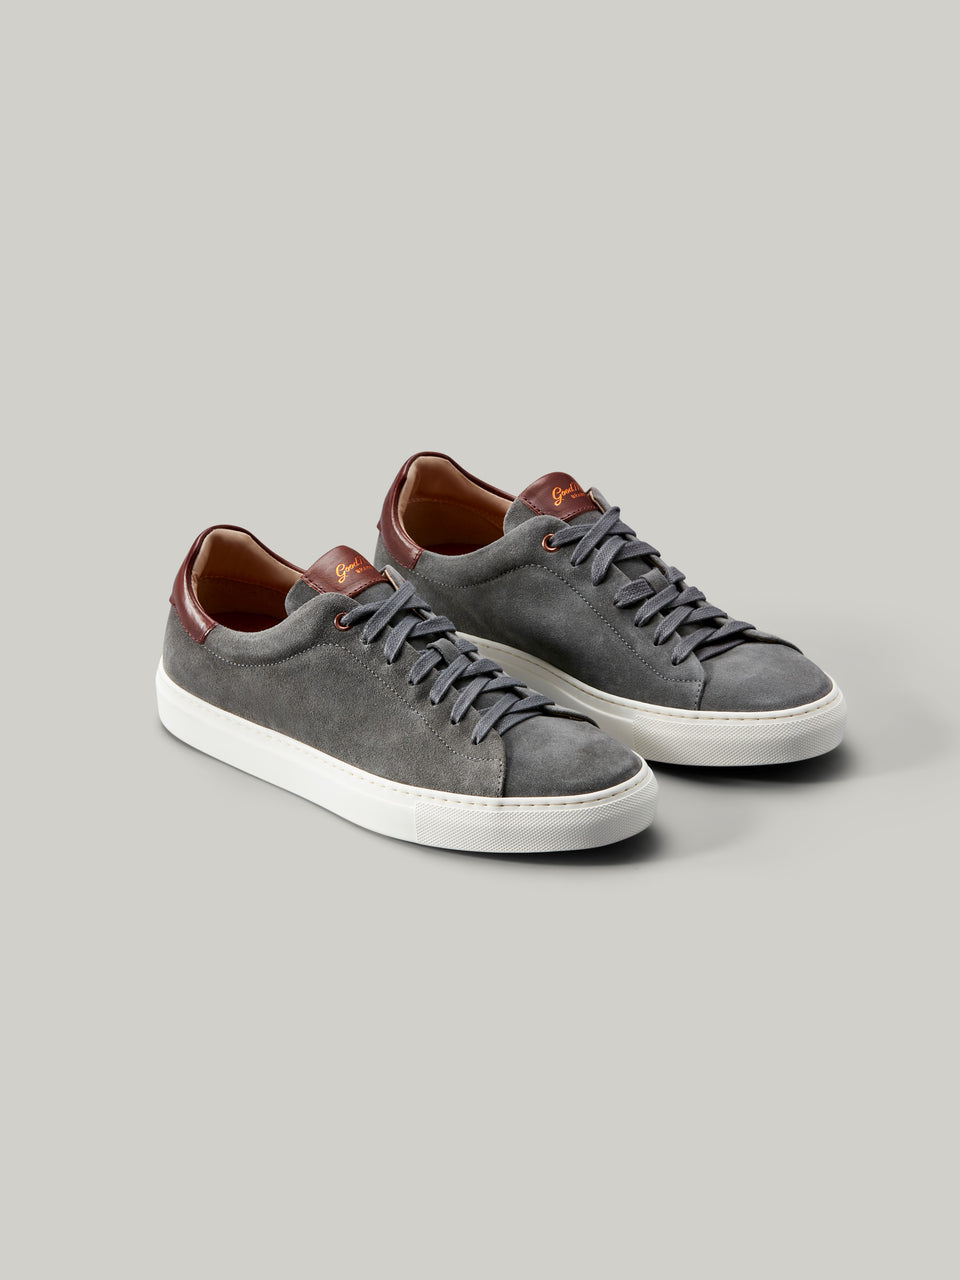 Legend Lo-Top Sneaker - Grey / Vachetta - Good Man Brand - Legend Lo-Top Sneaker - Grey / Vachetta